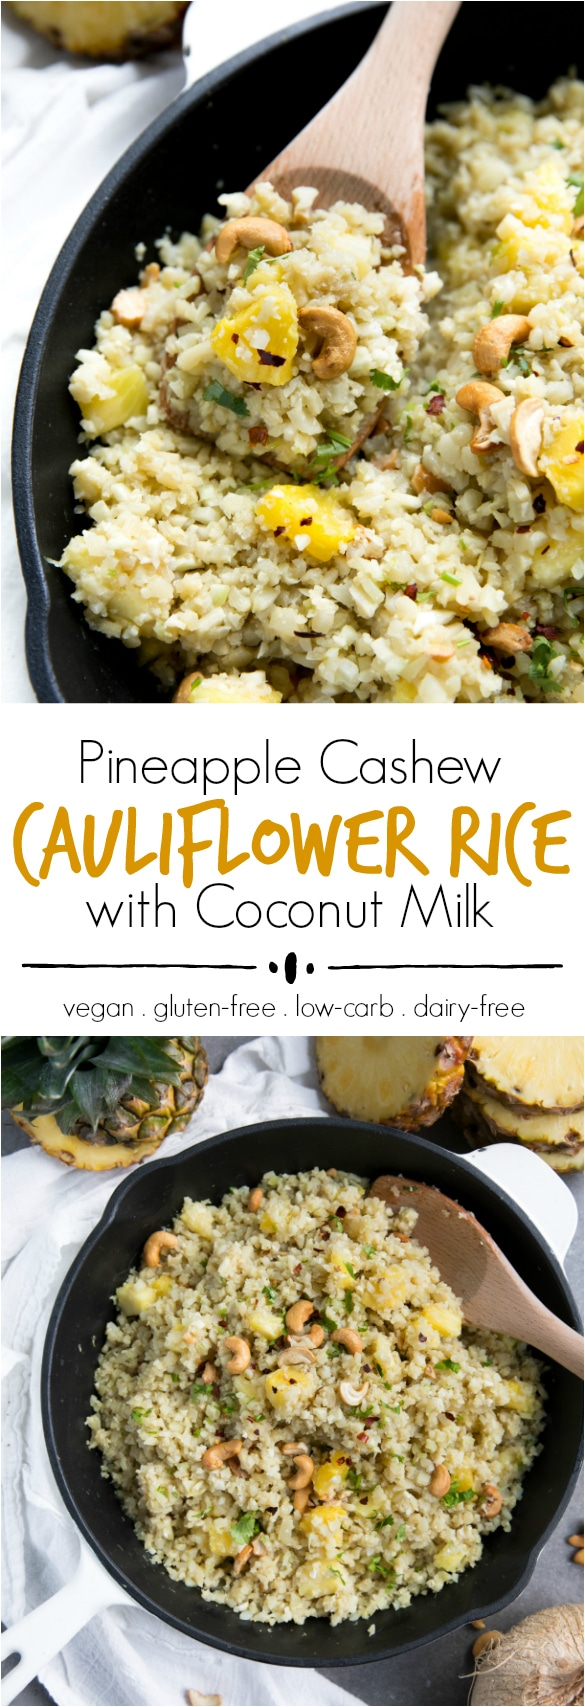 Pineapple Cashew Cauliflower Rice with Coconut Milk - @theforkedspoon